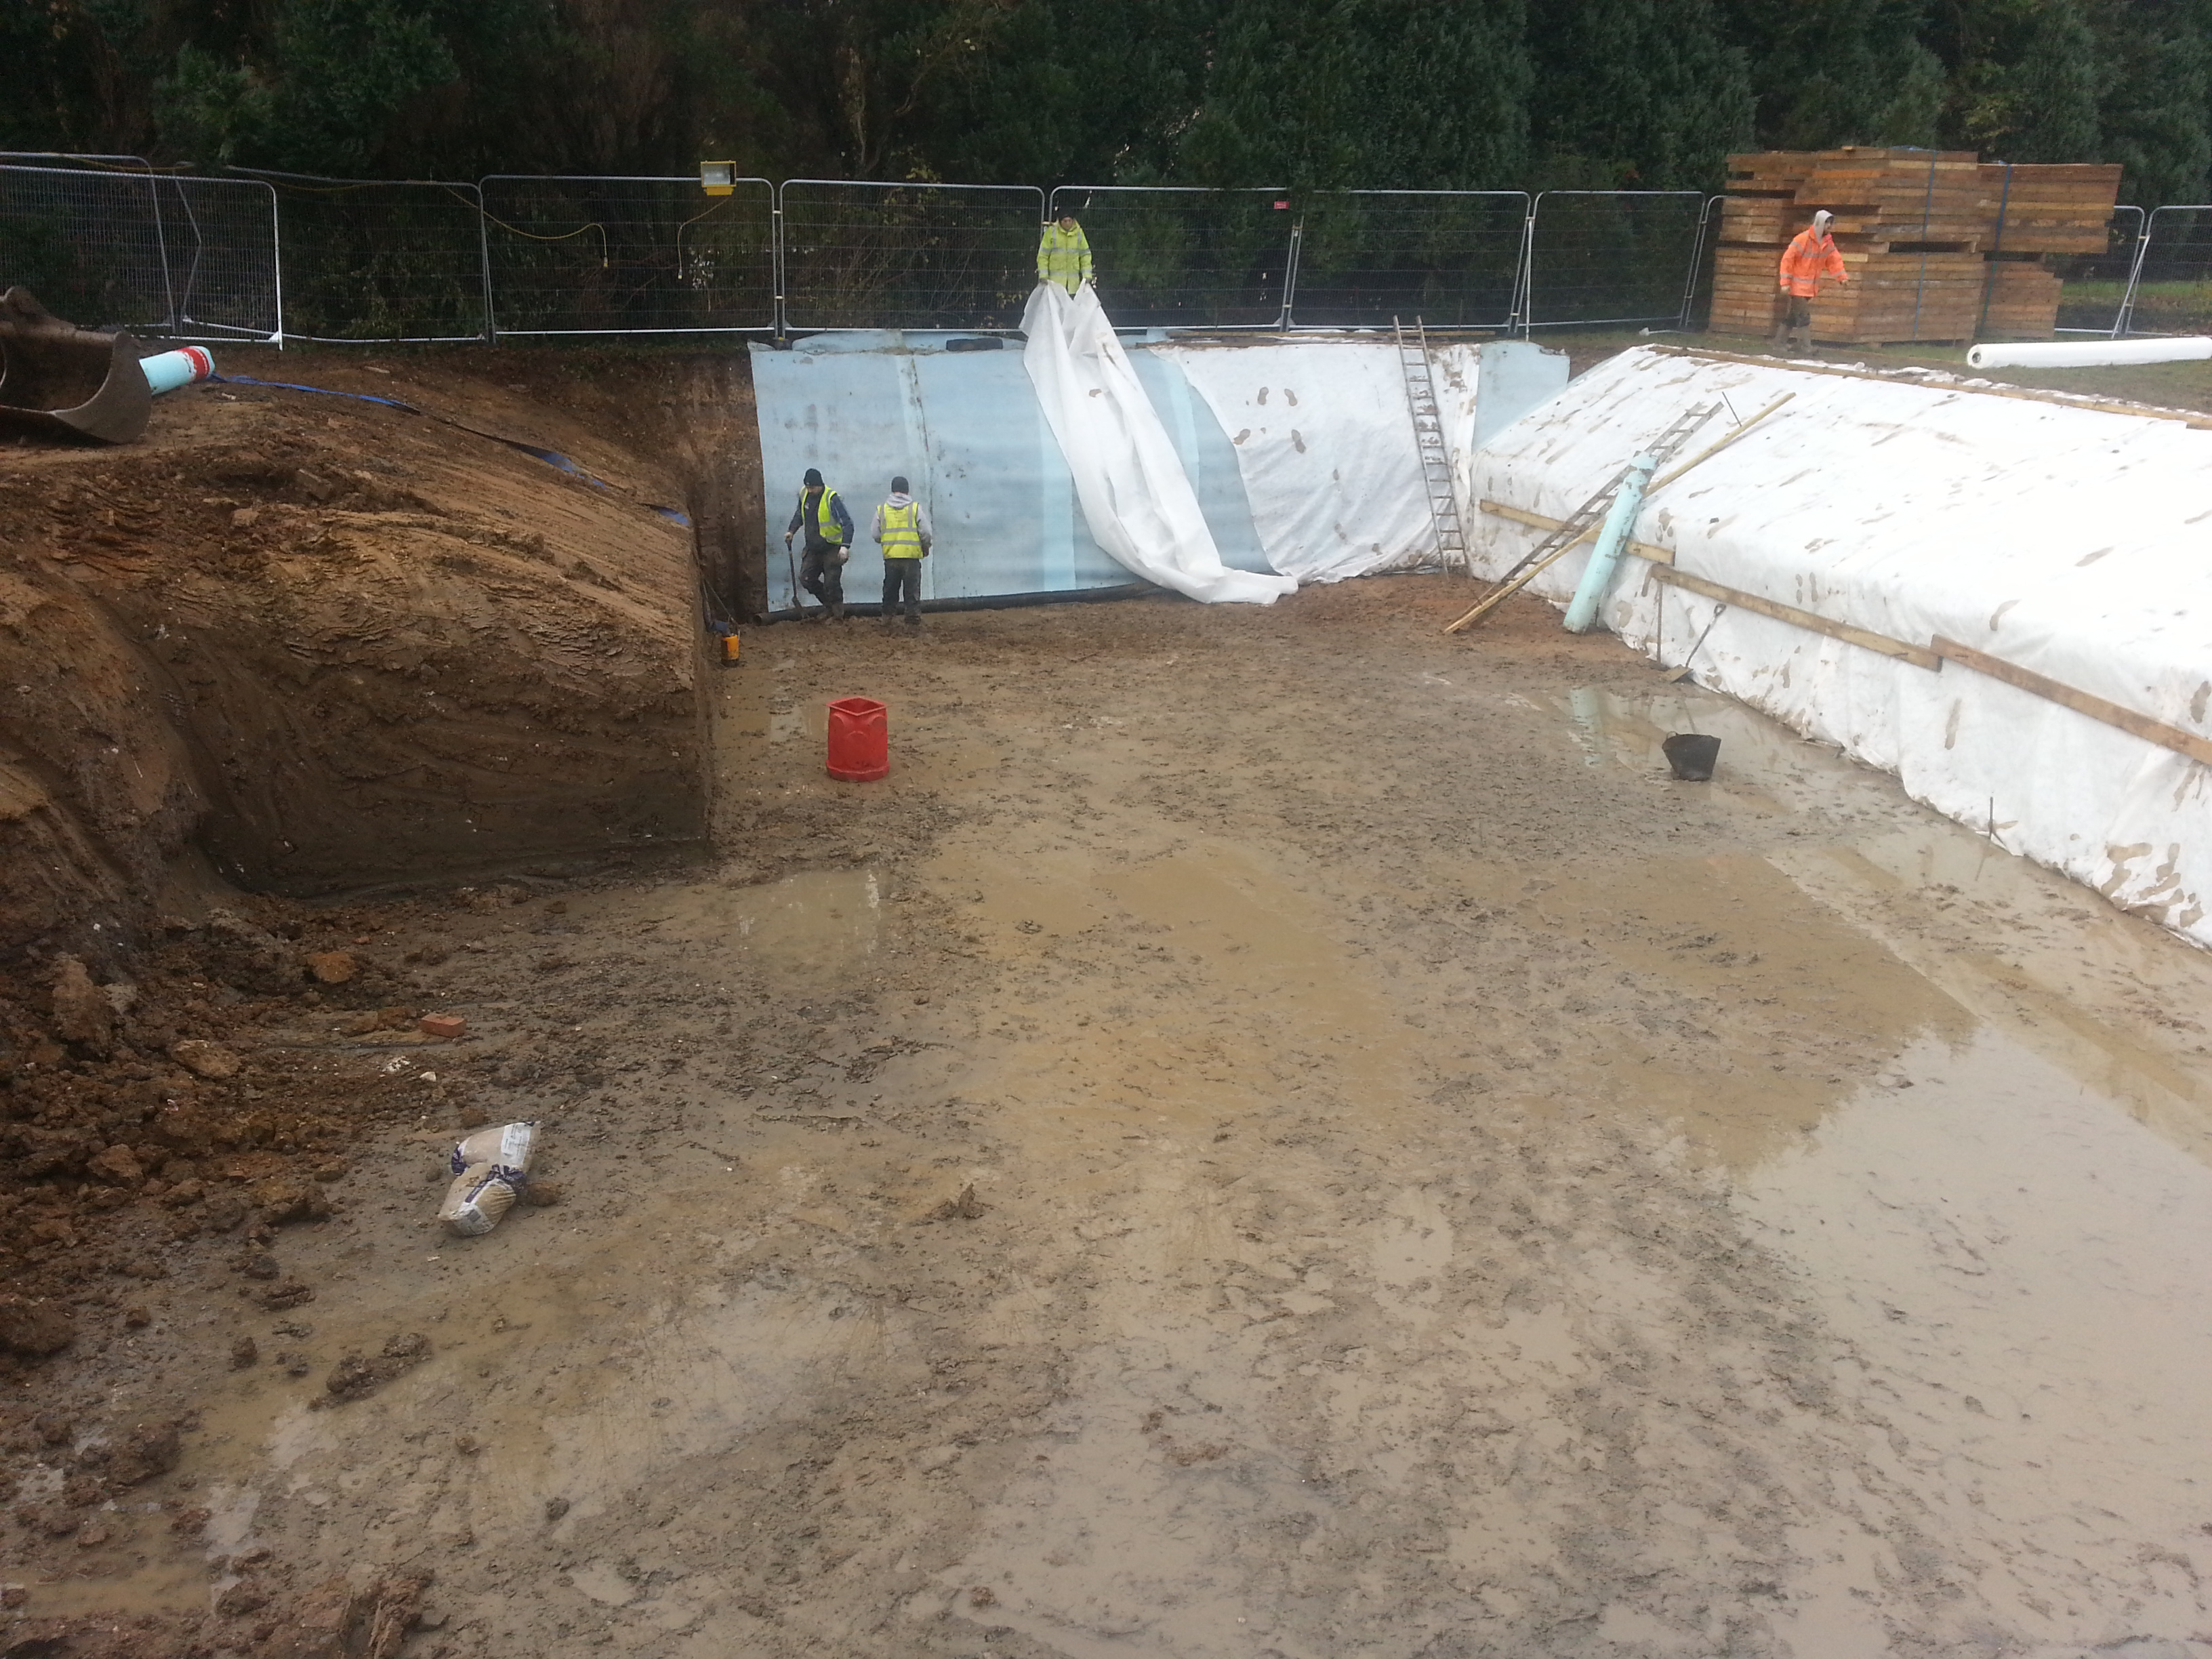 Protecting excavation banks from collapse for the team below